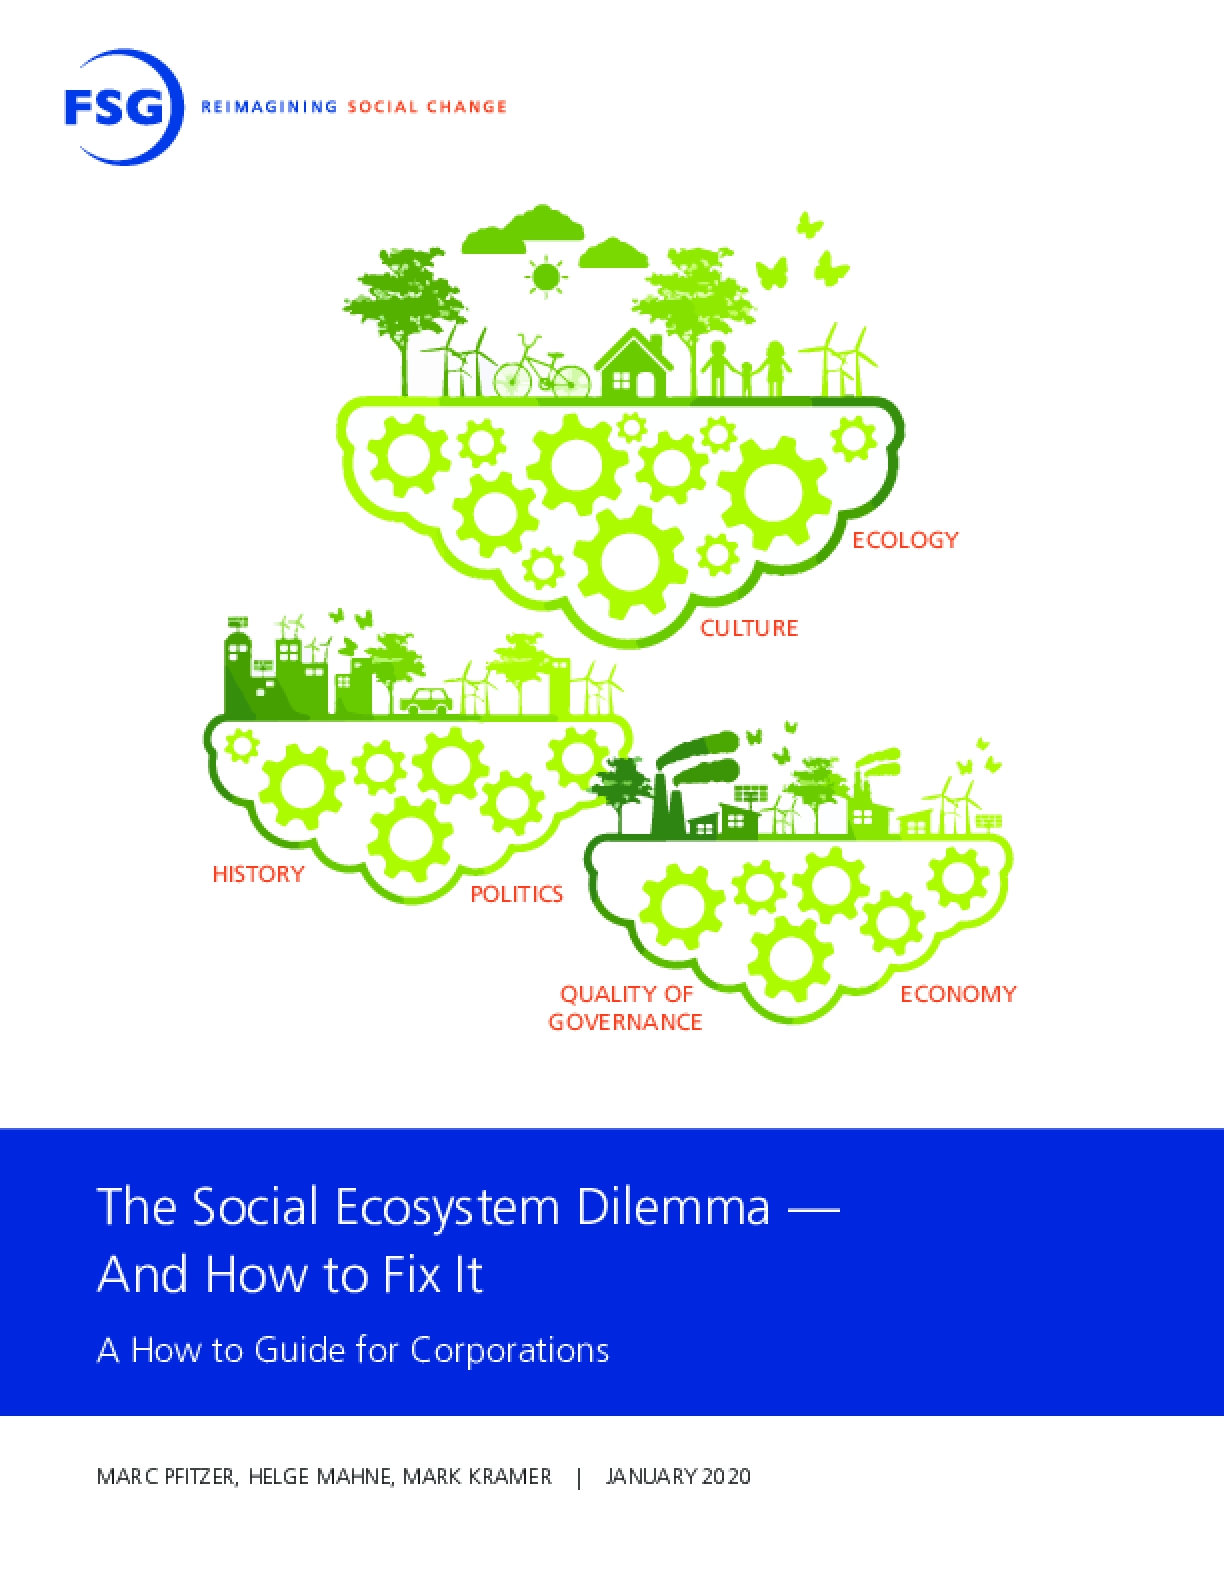 The Social Ecosystem Dilemma -- And How to Fix It